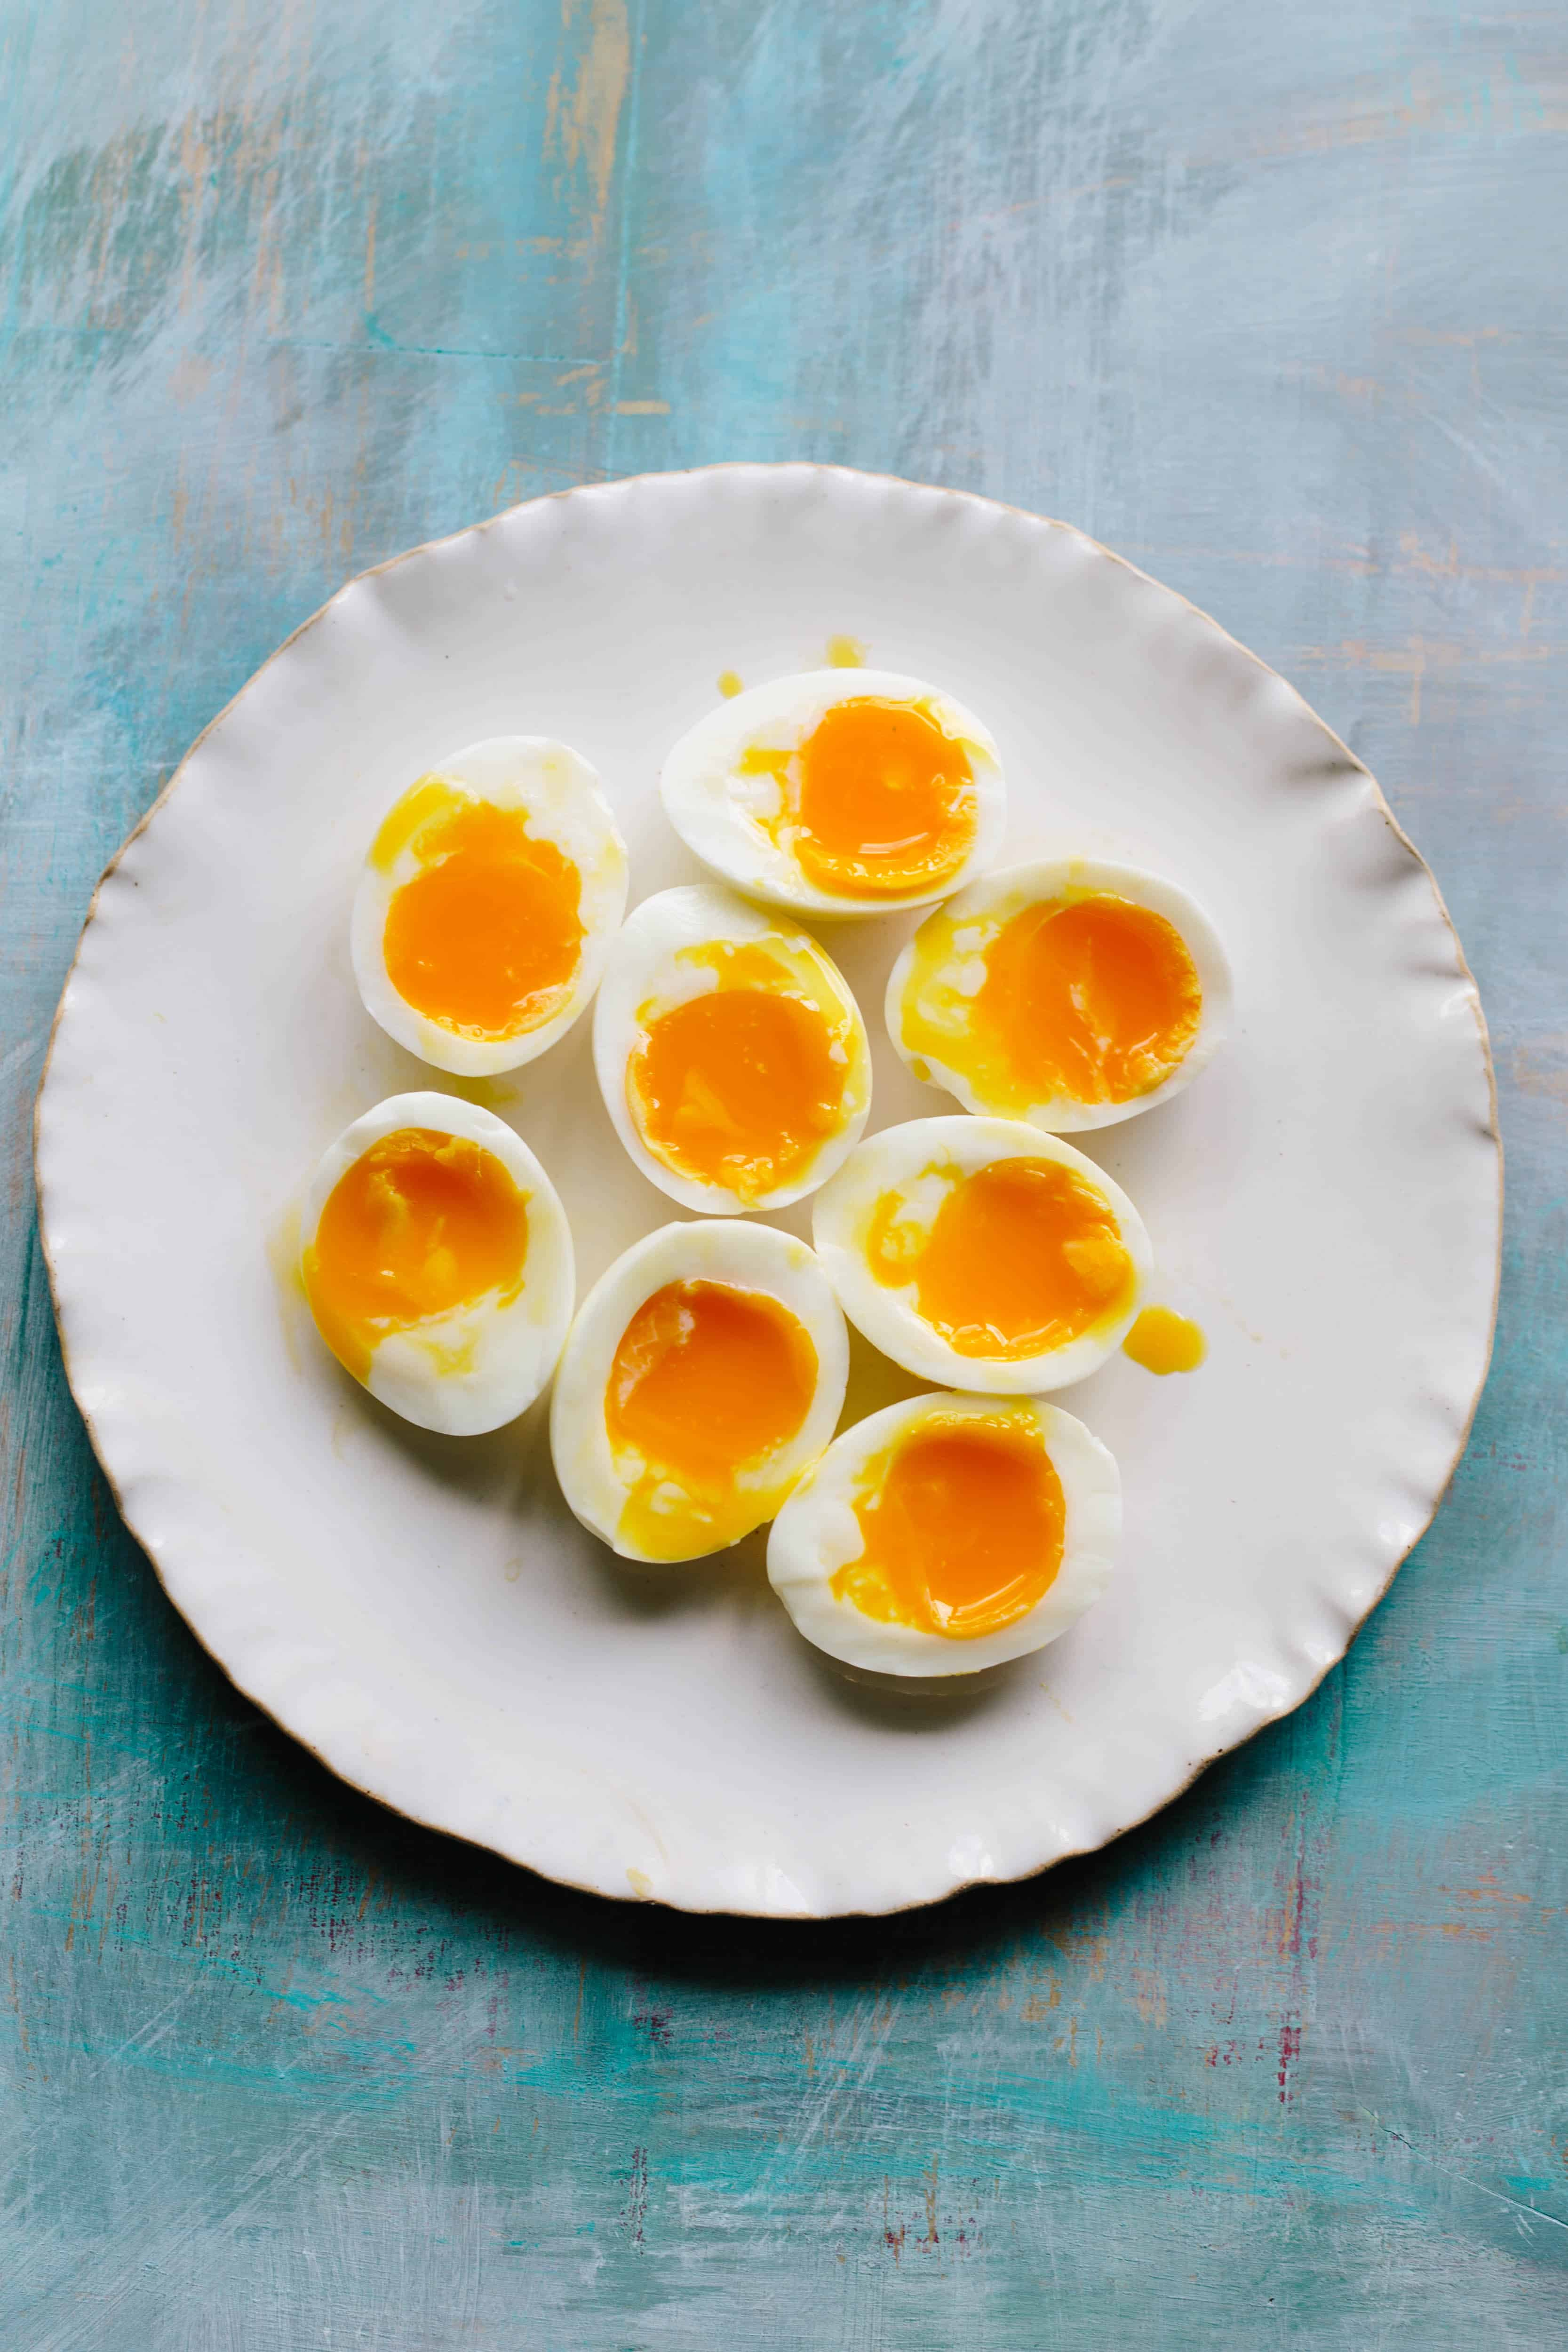 A white dinner plate with eight soft boiled egg halves.